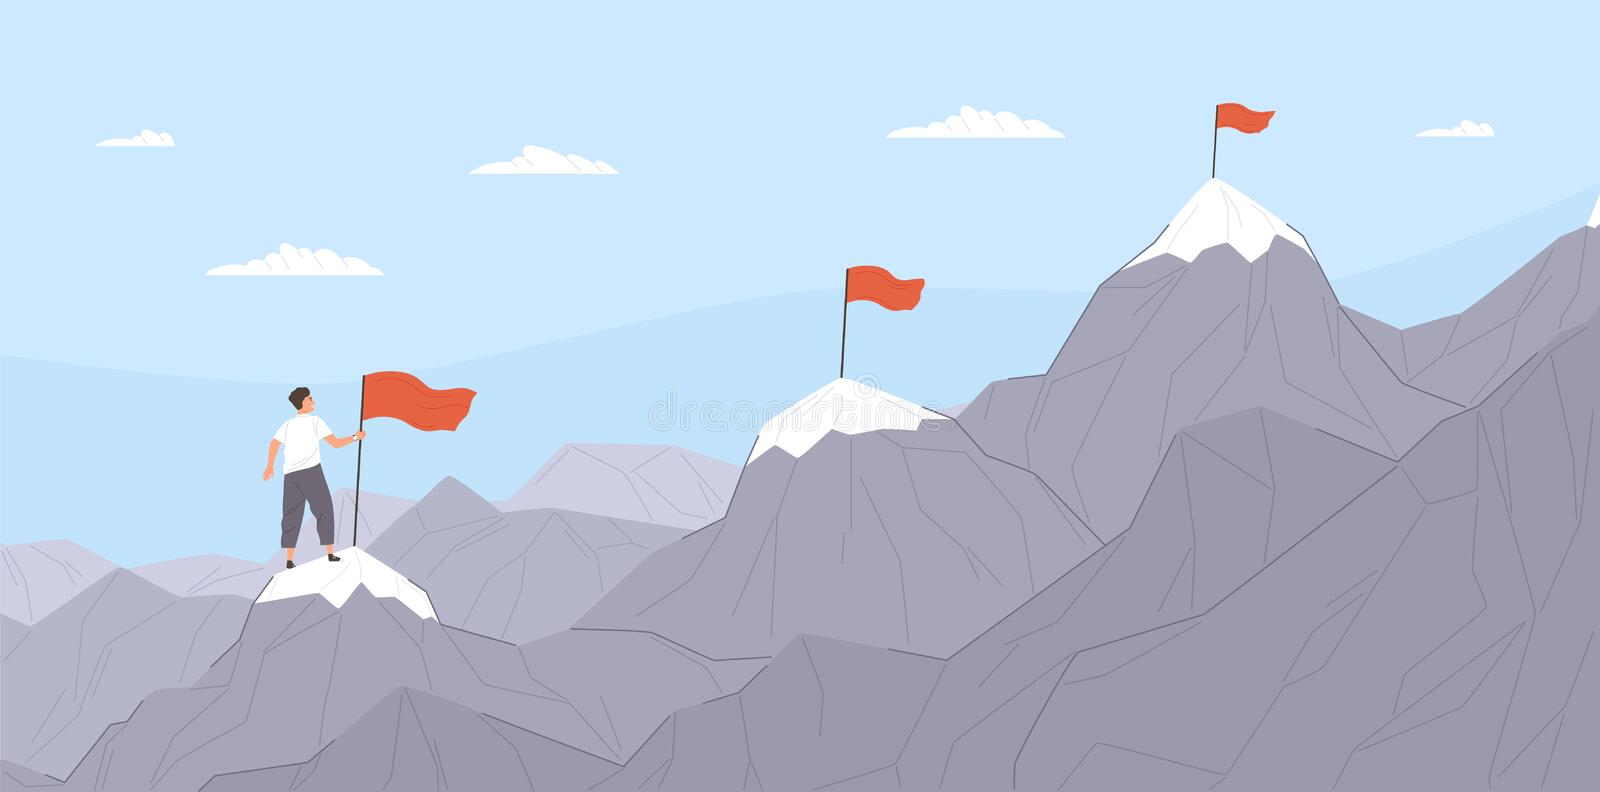 Office worker climbing up mountains or cliffs and moving to final destination point. Concept of gradual business royalty free illustration